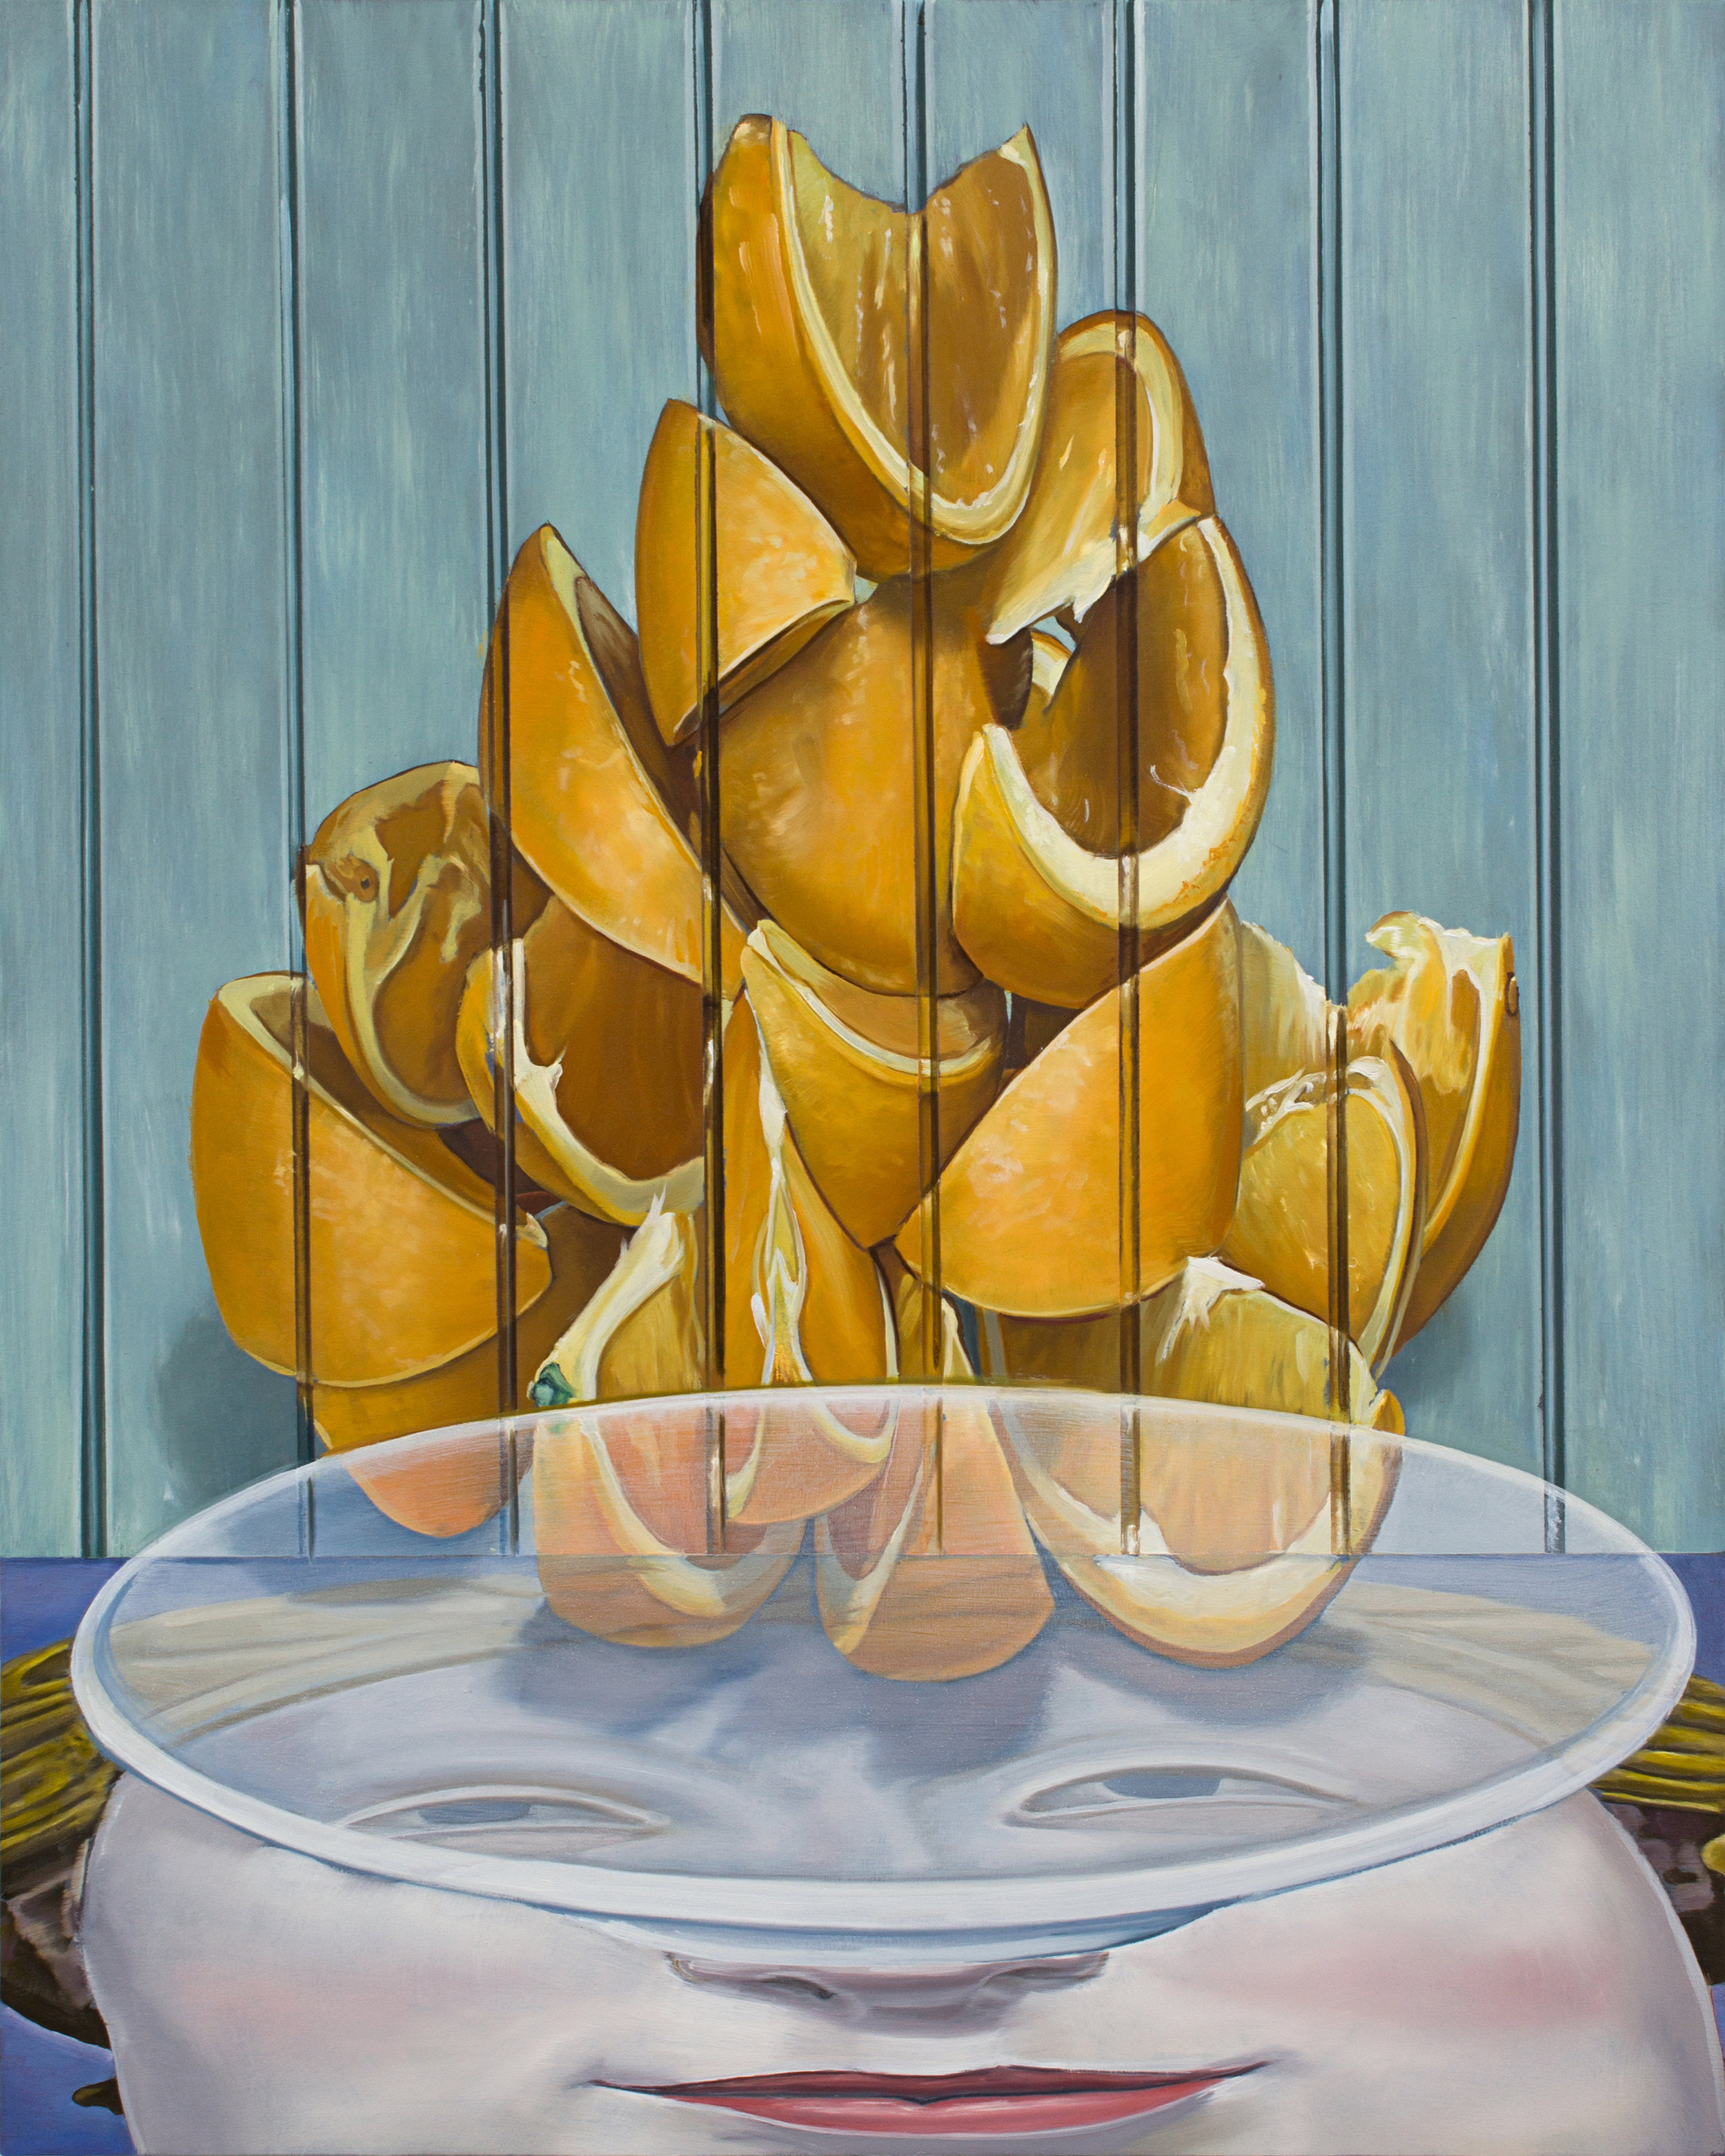 Orange Trip for Méliès,  2018. Oil on panel, 20 x 16 inches